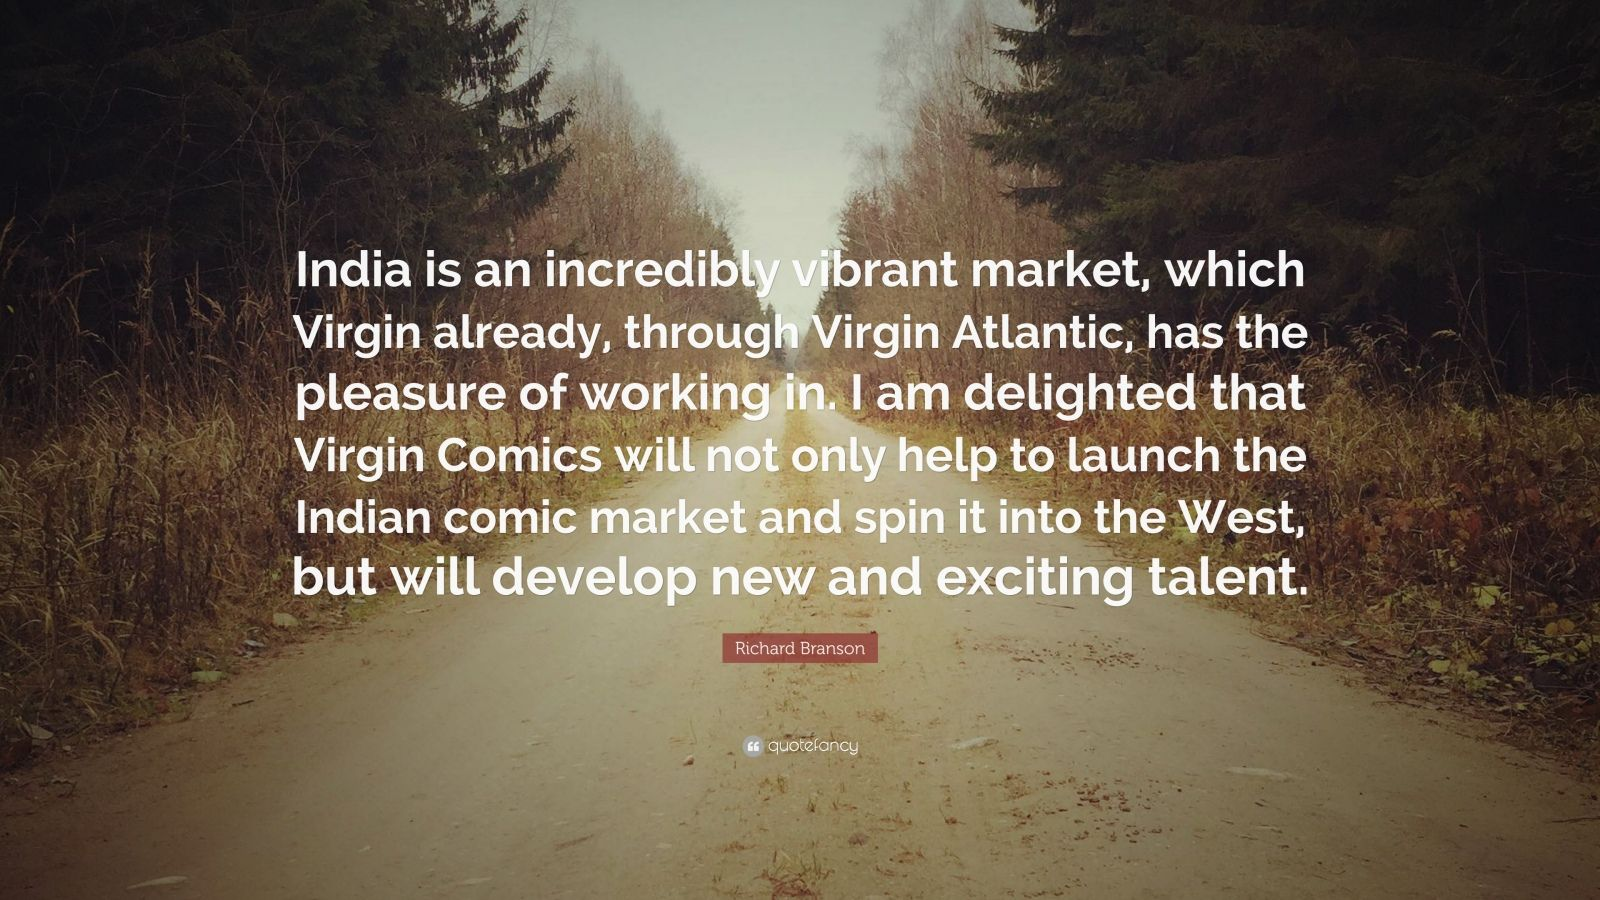 """Richard Branson Quote: """"India is an incredibly vibrant market, which Virgin already, through Virgin Atlantic, has the pleasure of working in. I am delighted that Virgin Comics will not only help to launch the Indian comic market and spin it into the West, but will develop new and exciting talent."""""""